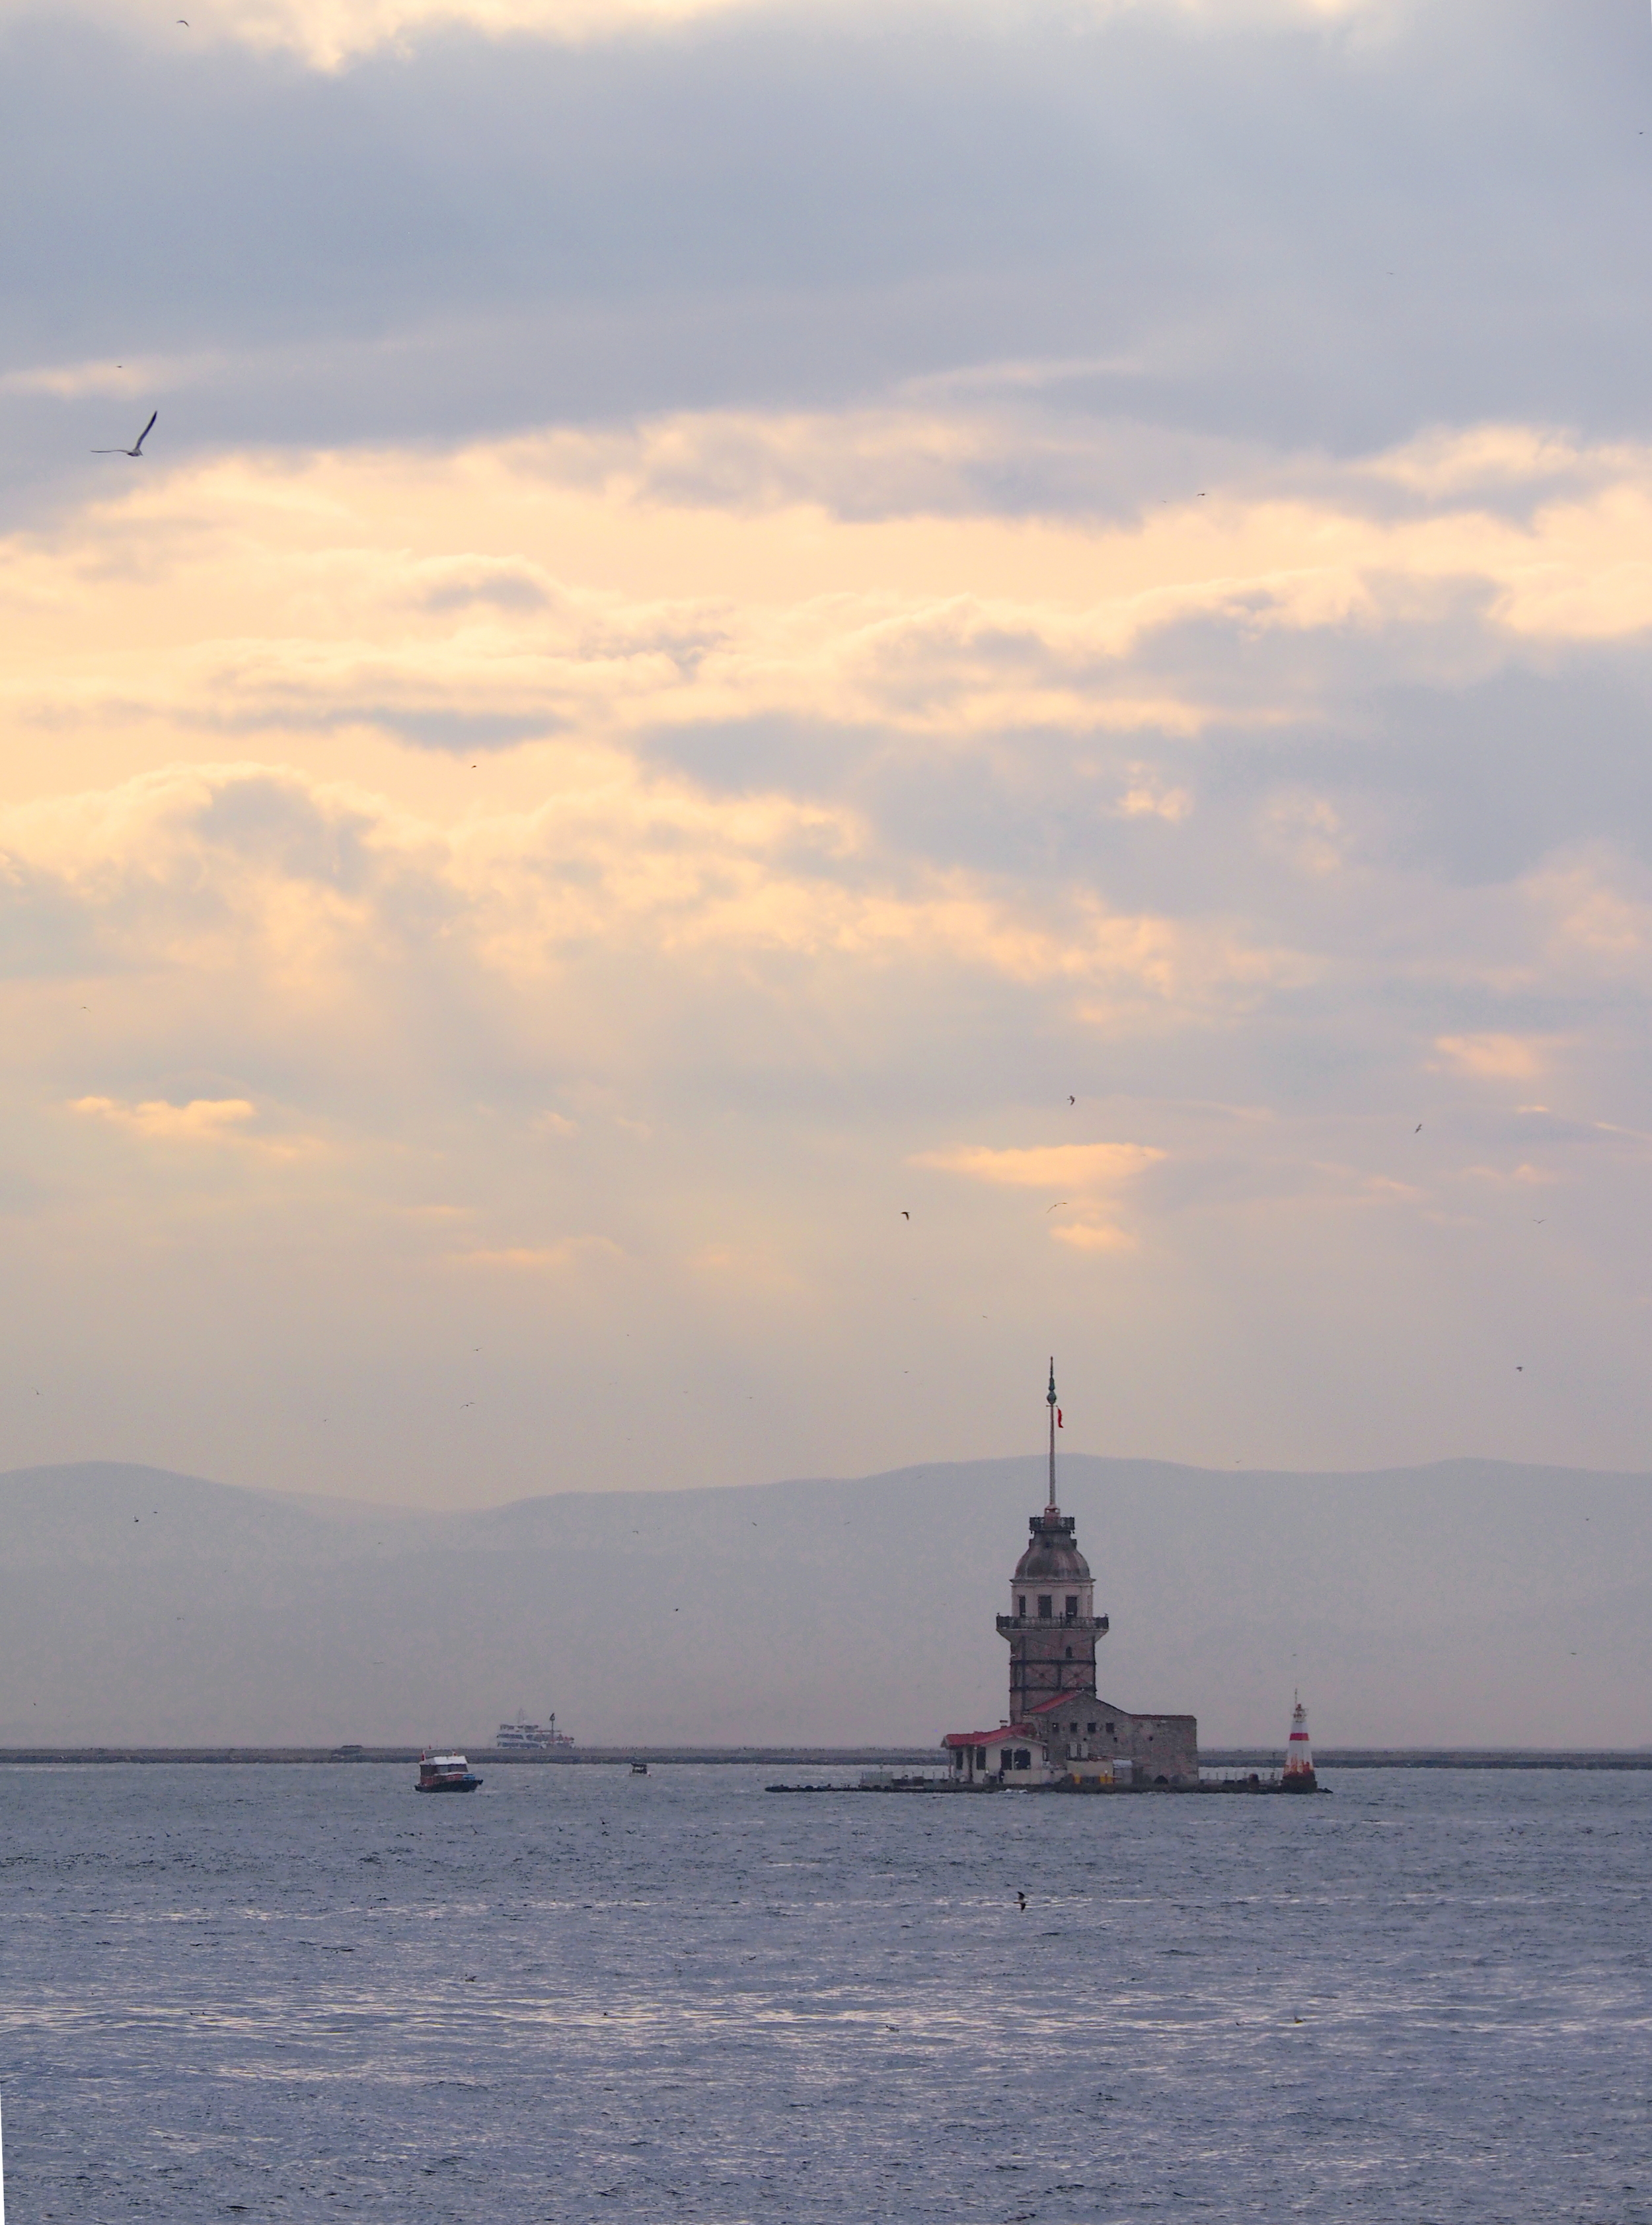 Kız Kulesi, The Maiden's Tower, Istanbul, Turkey